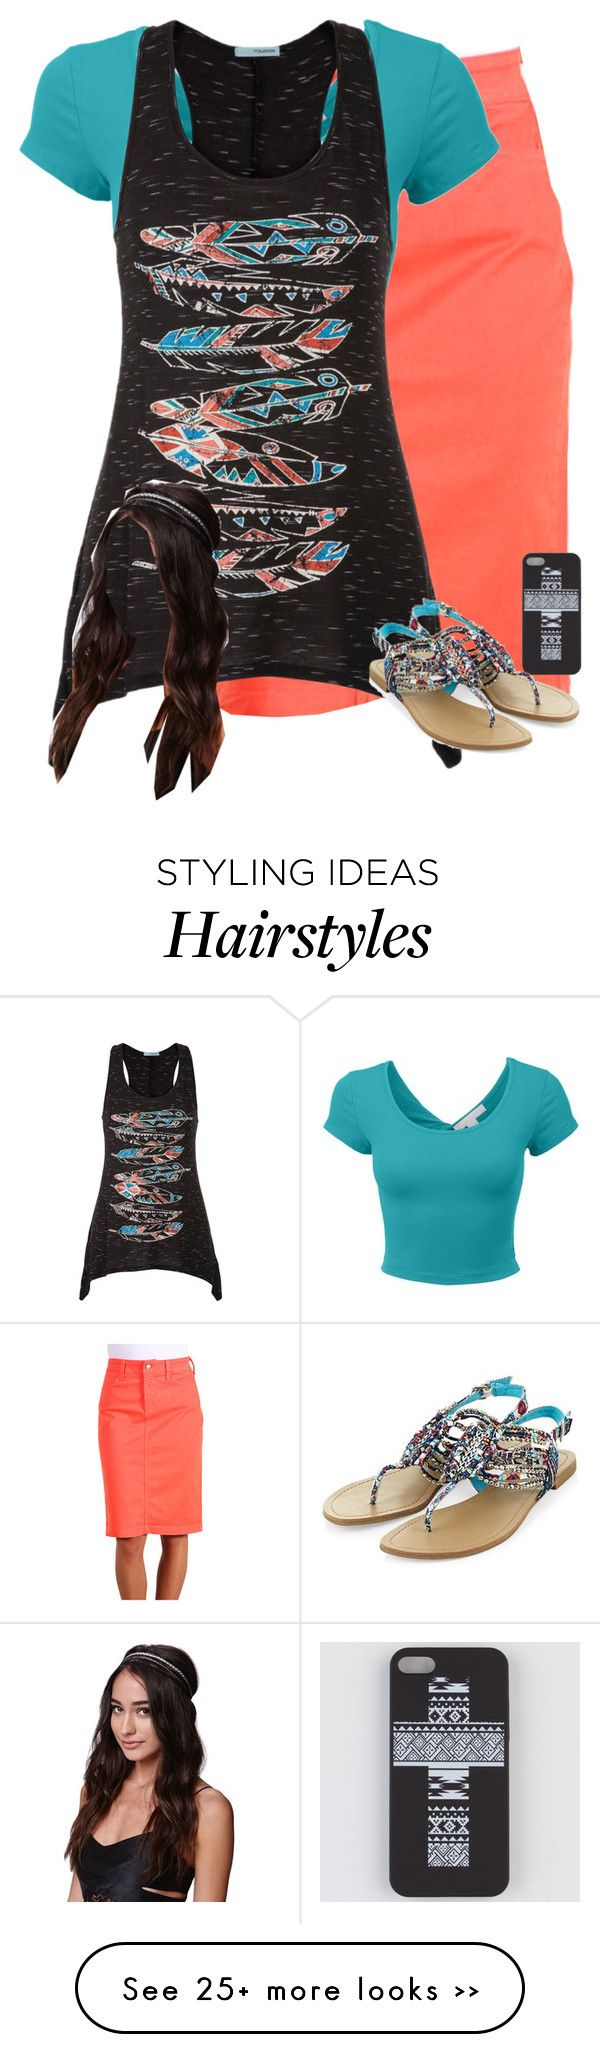 """Untitled #577"" by haileydove on Polyvore featuring NYDJ, maurices and With Love From CA"